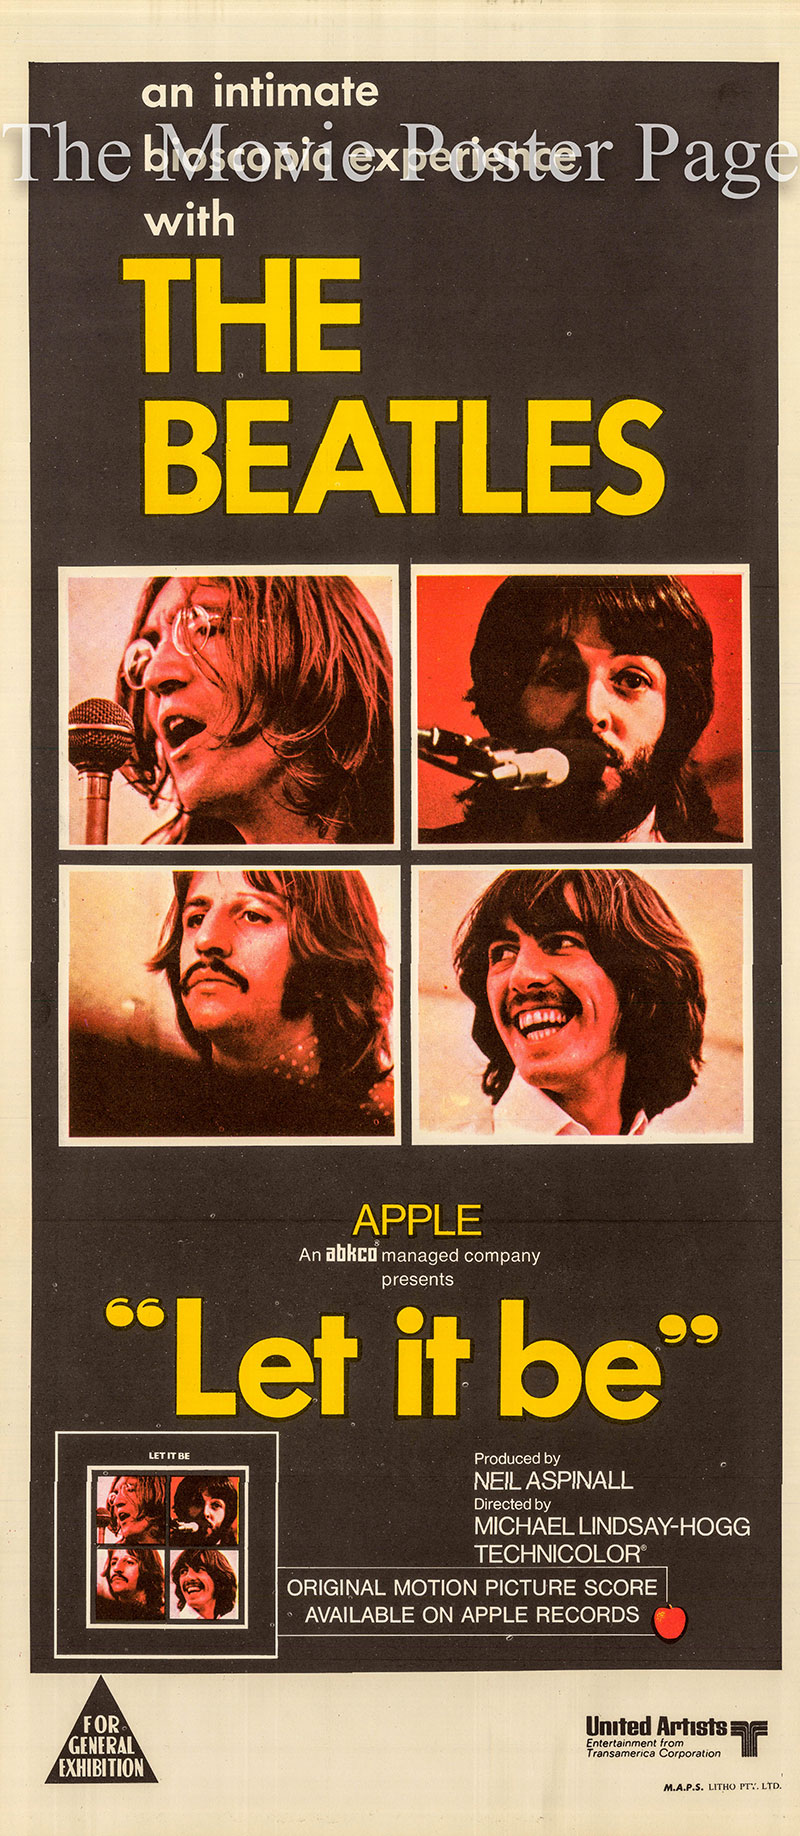 Pictured is an Australian daybill poster for the 1970 Michael Lindsay-Hogg film Let it Be starring the Beatles.